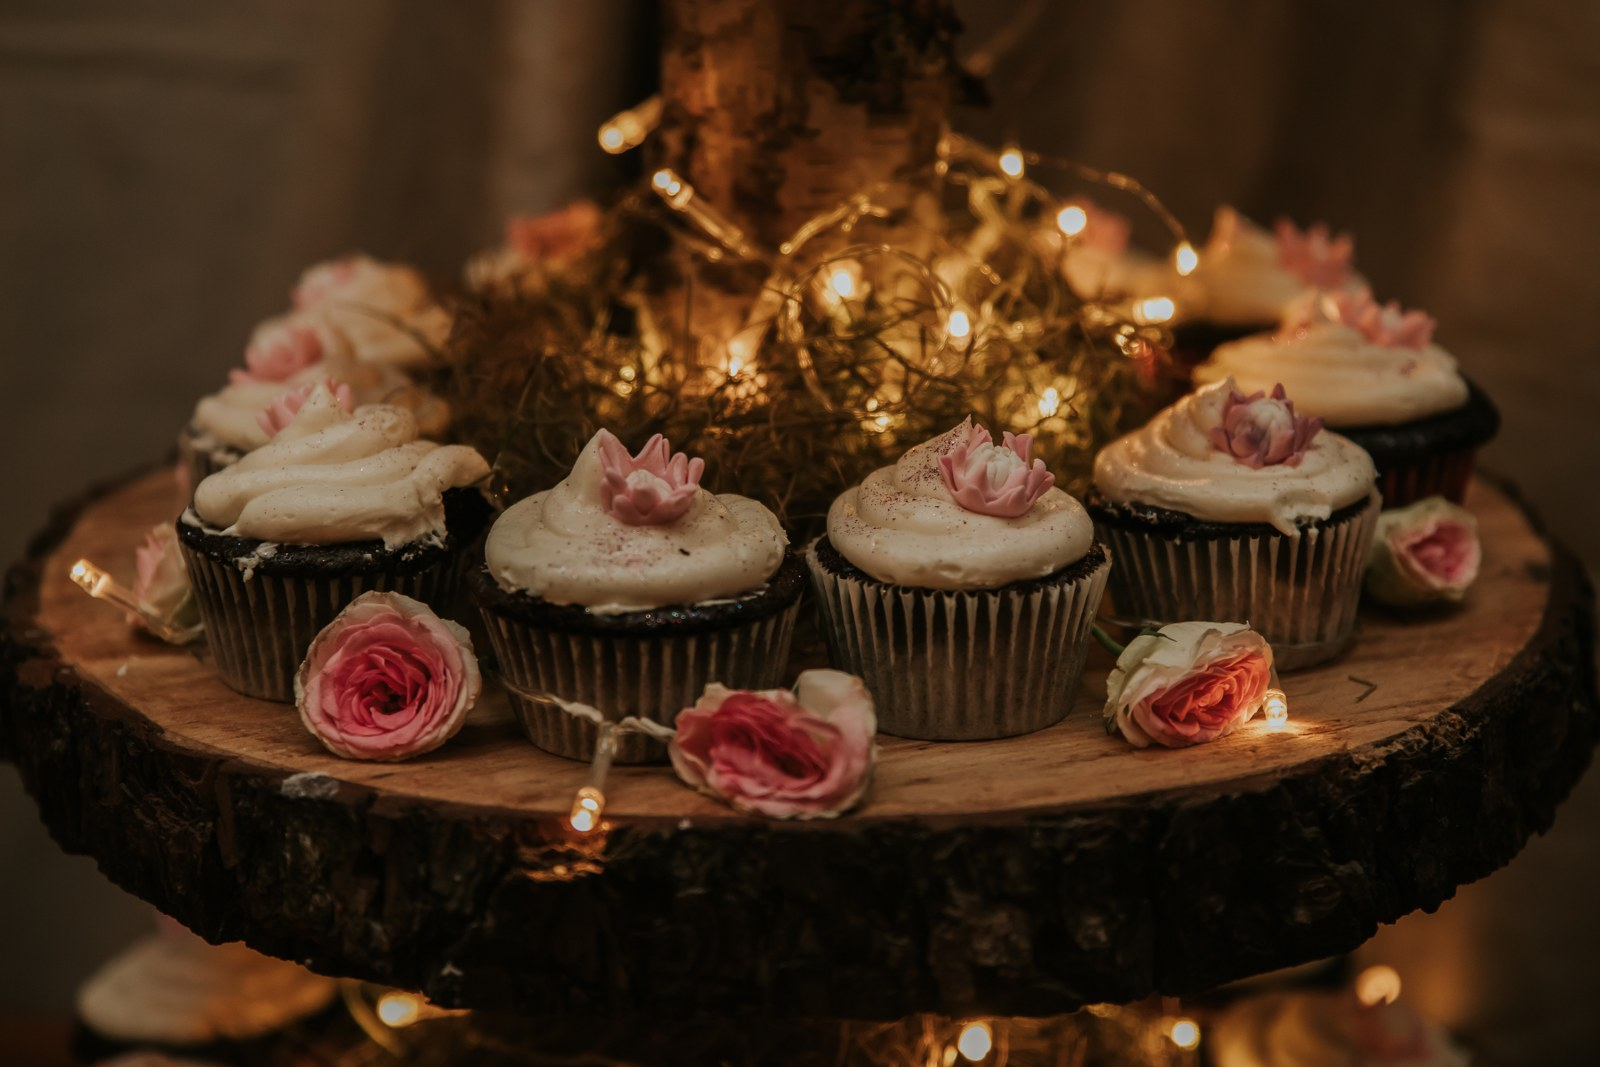 Cupcakes with hand-made edible proteas